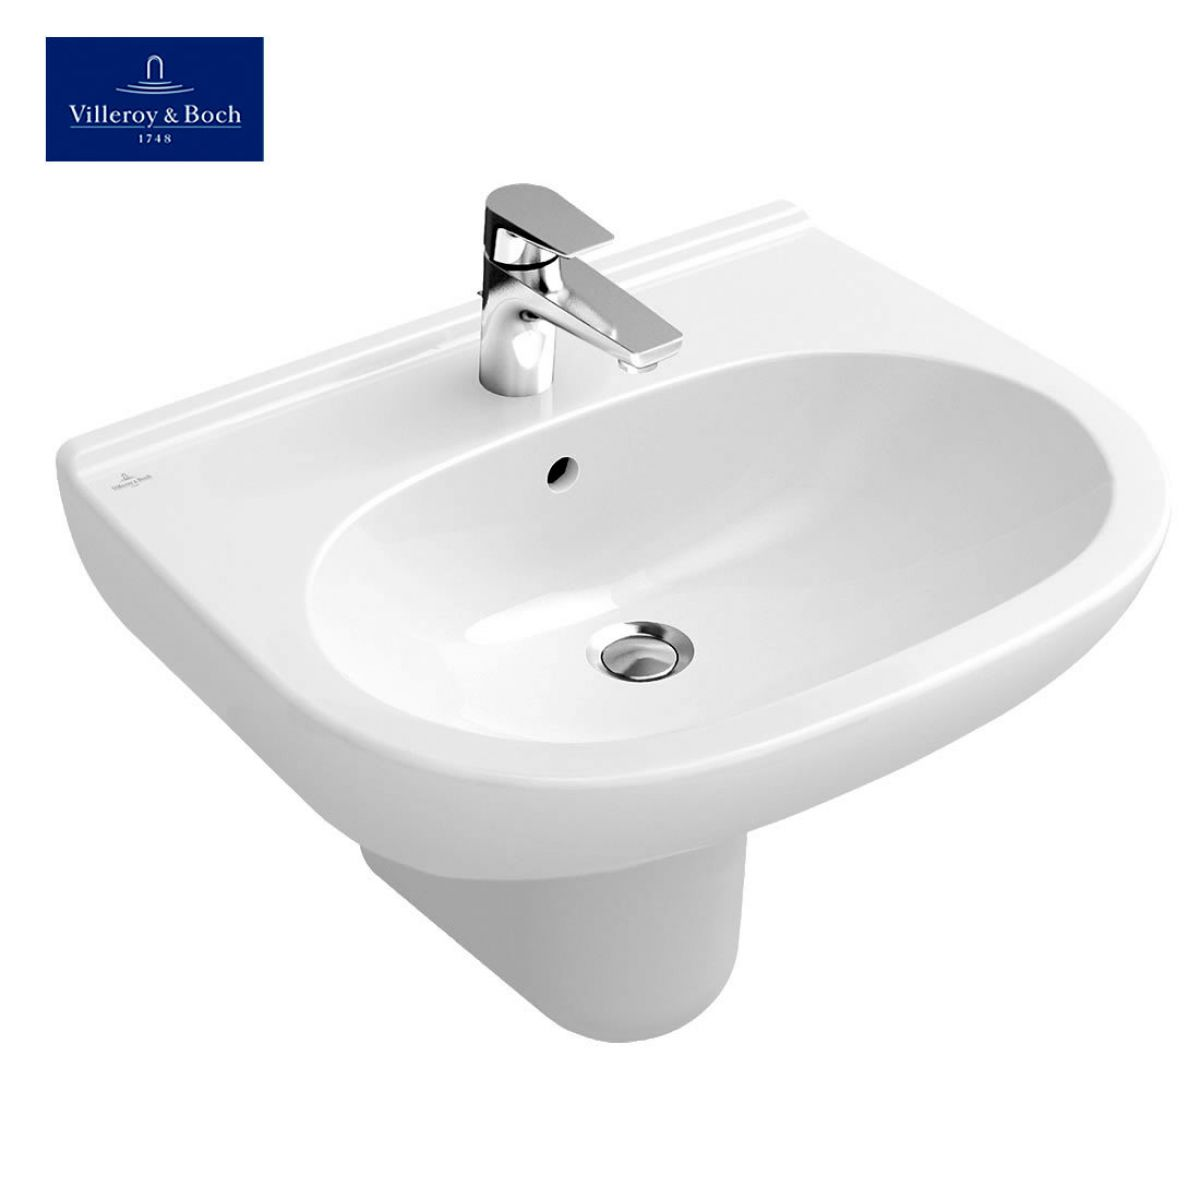 villeroy boch o novo curved washbasin uk bathrooms. Black Bedroom Furniture Sets. Home Design Ideas